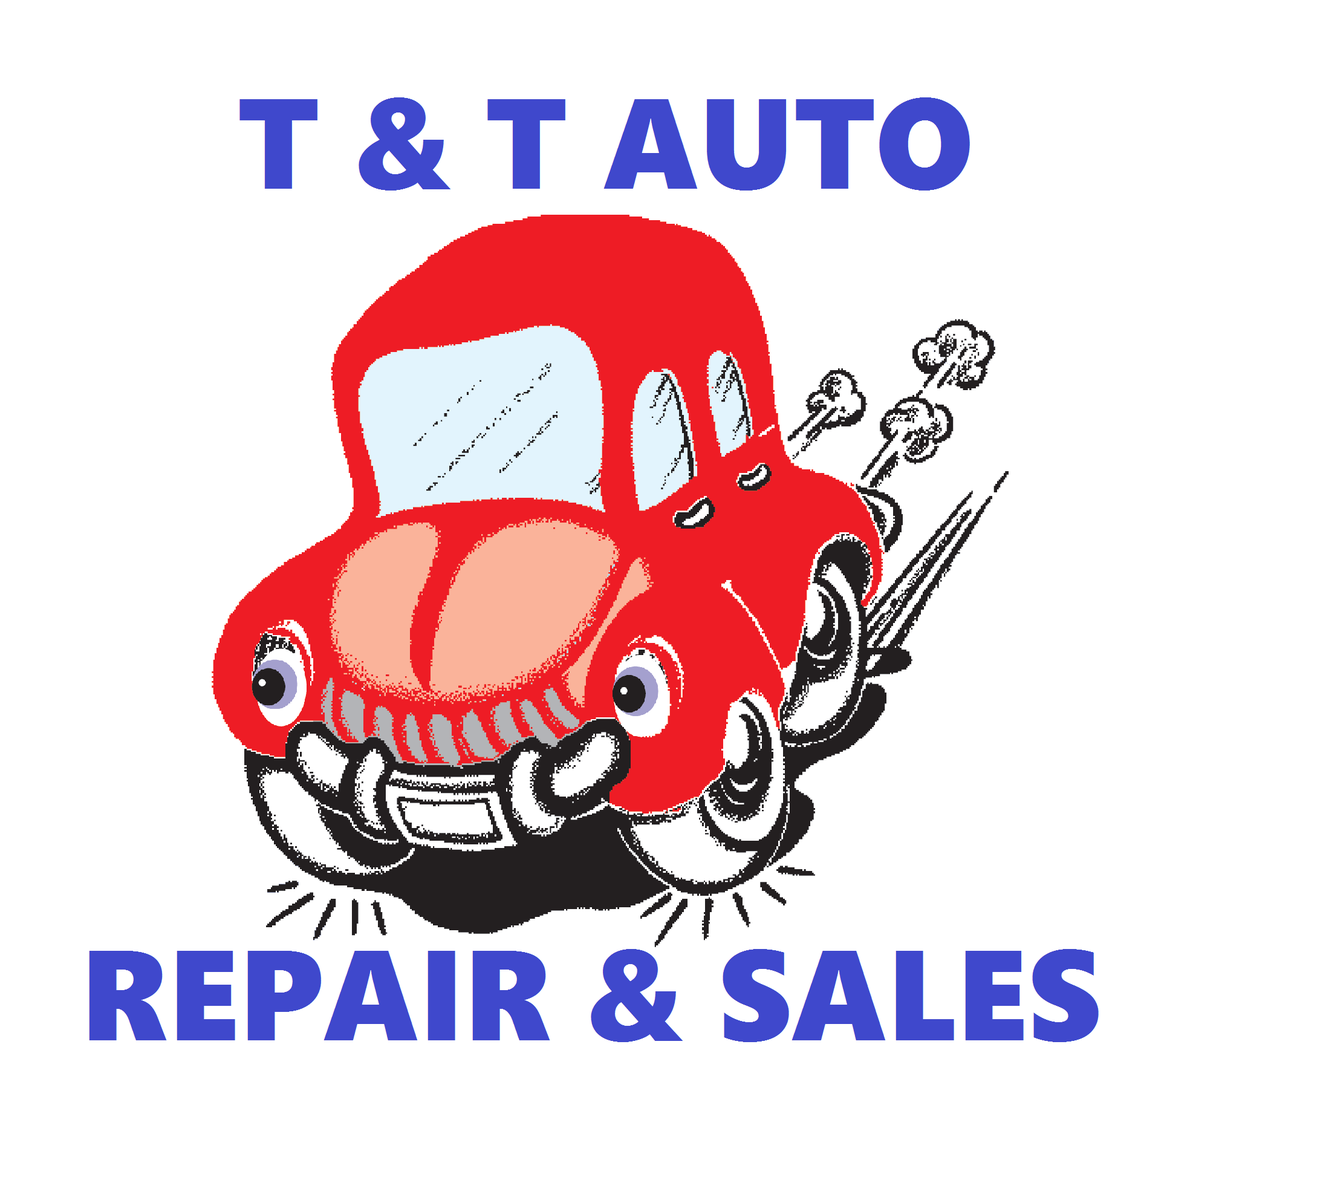 Honda Dealers Ri >> T & T Auto Repair & Sales - Fall River, MA: Read Consumer reviews, Browse Used and New Cars for Sale